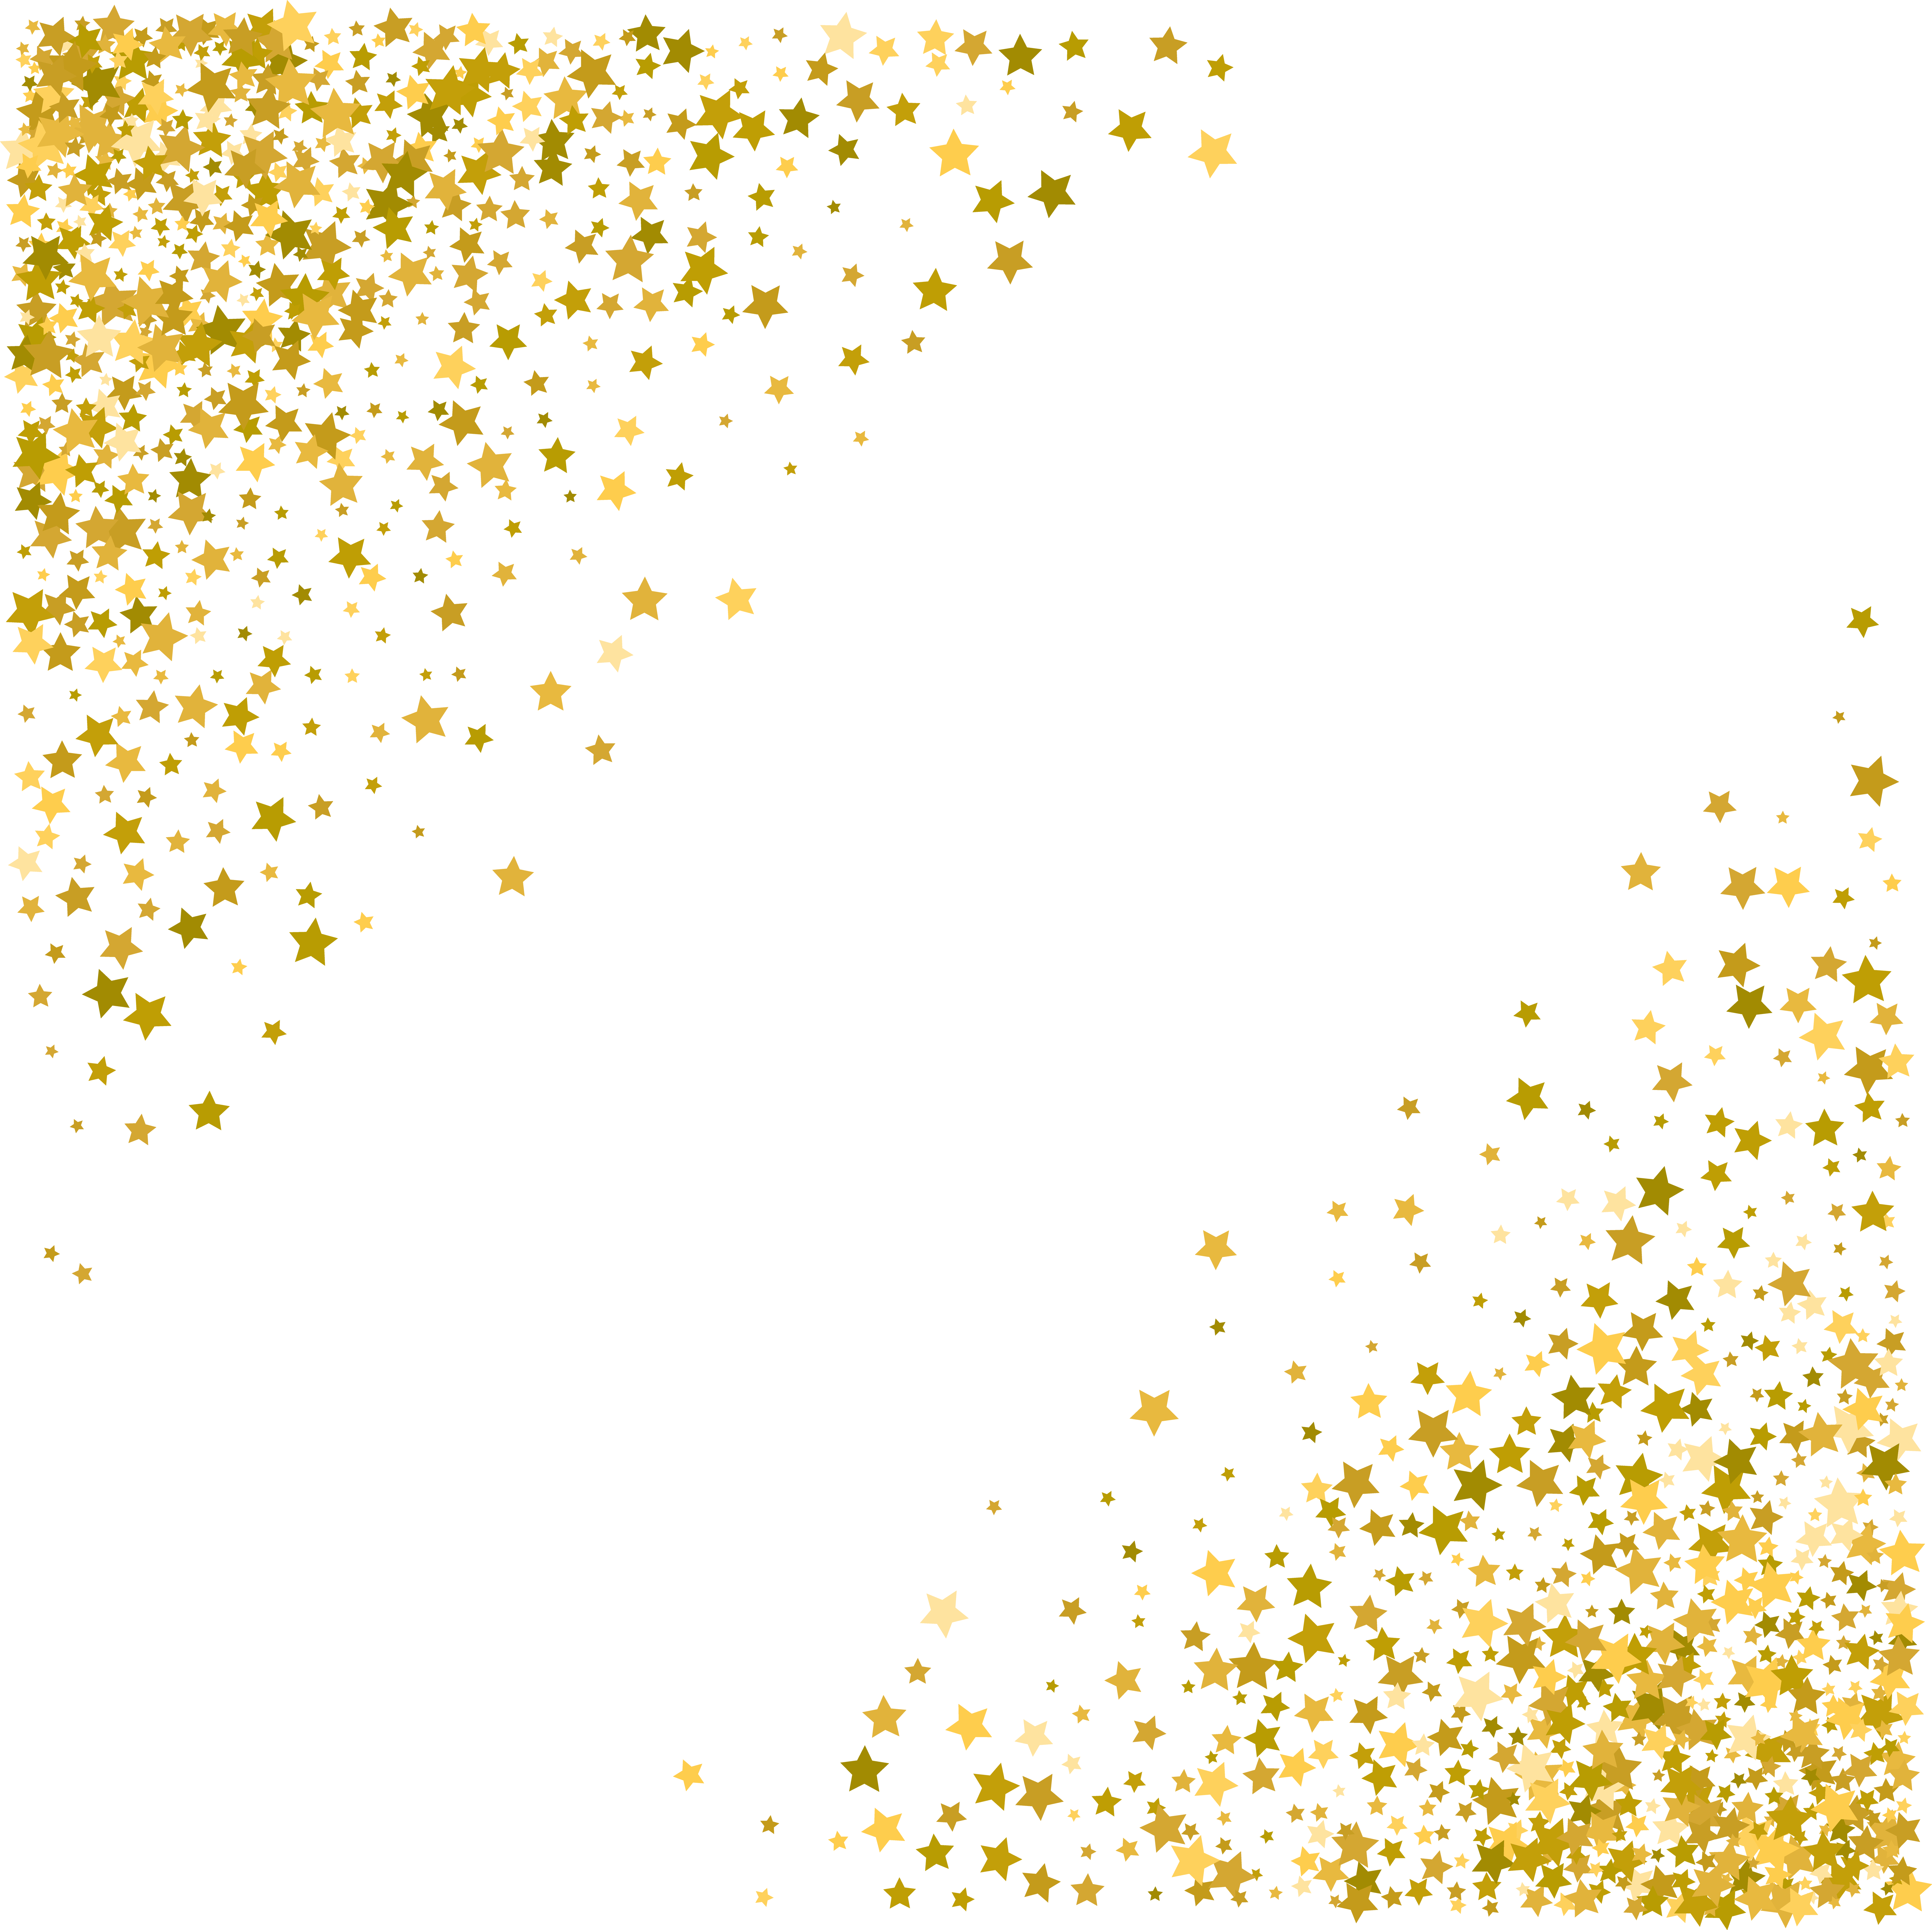 Stars Decoration Png Clipart Image Gallery Yopriceville High Quality Images And Trans Flower Graphic Design Gold And Black Wallpaper Blue Wallpaper Iphone